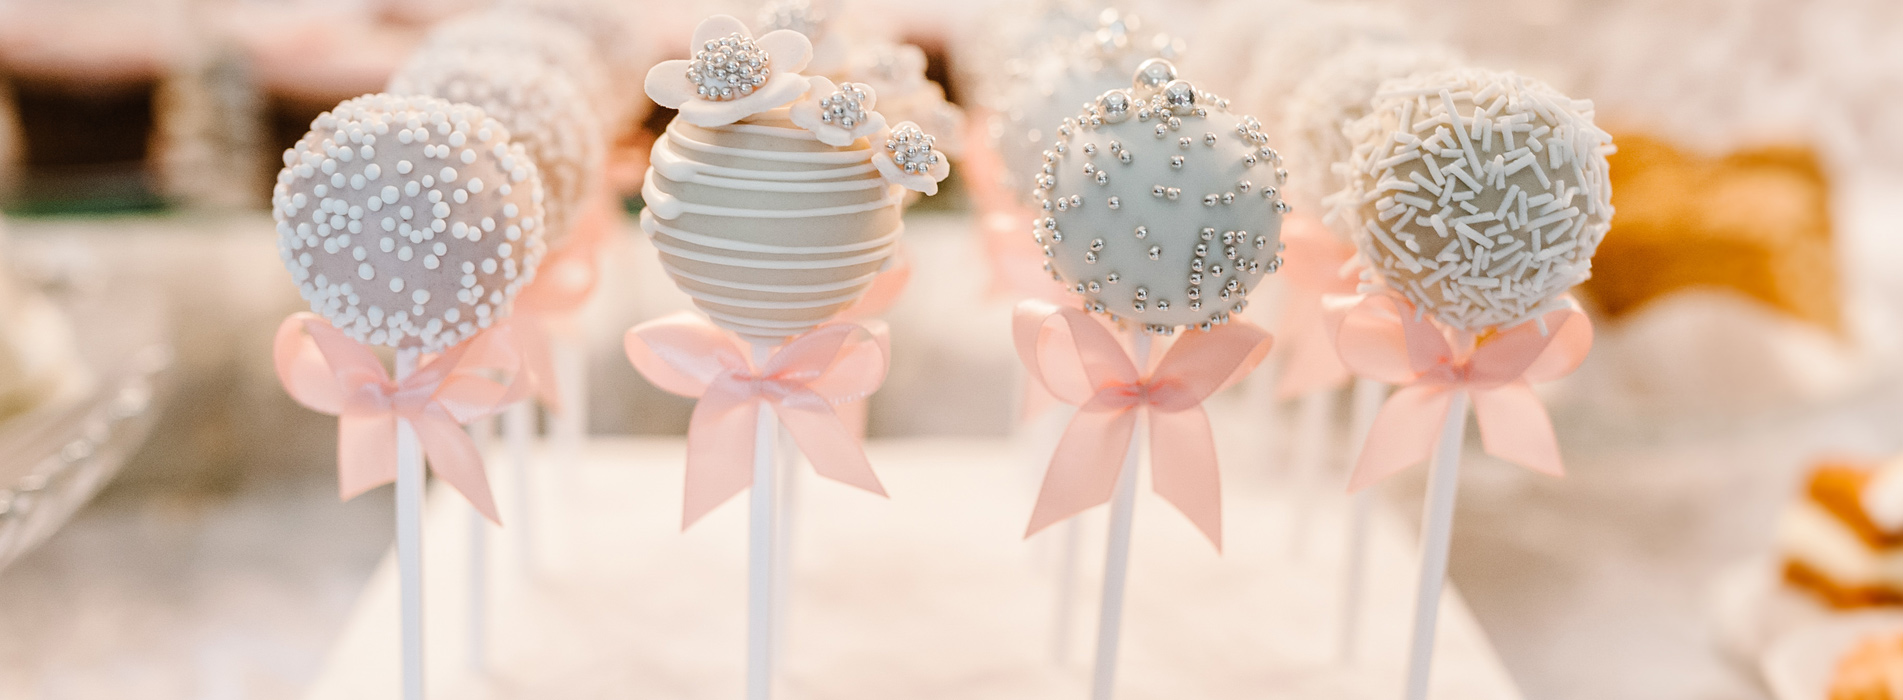 Wedding Favors & Treats